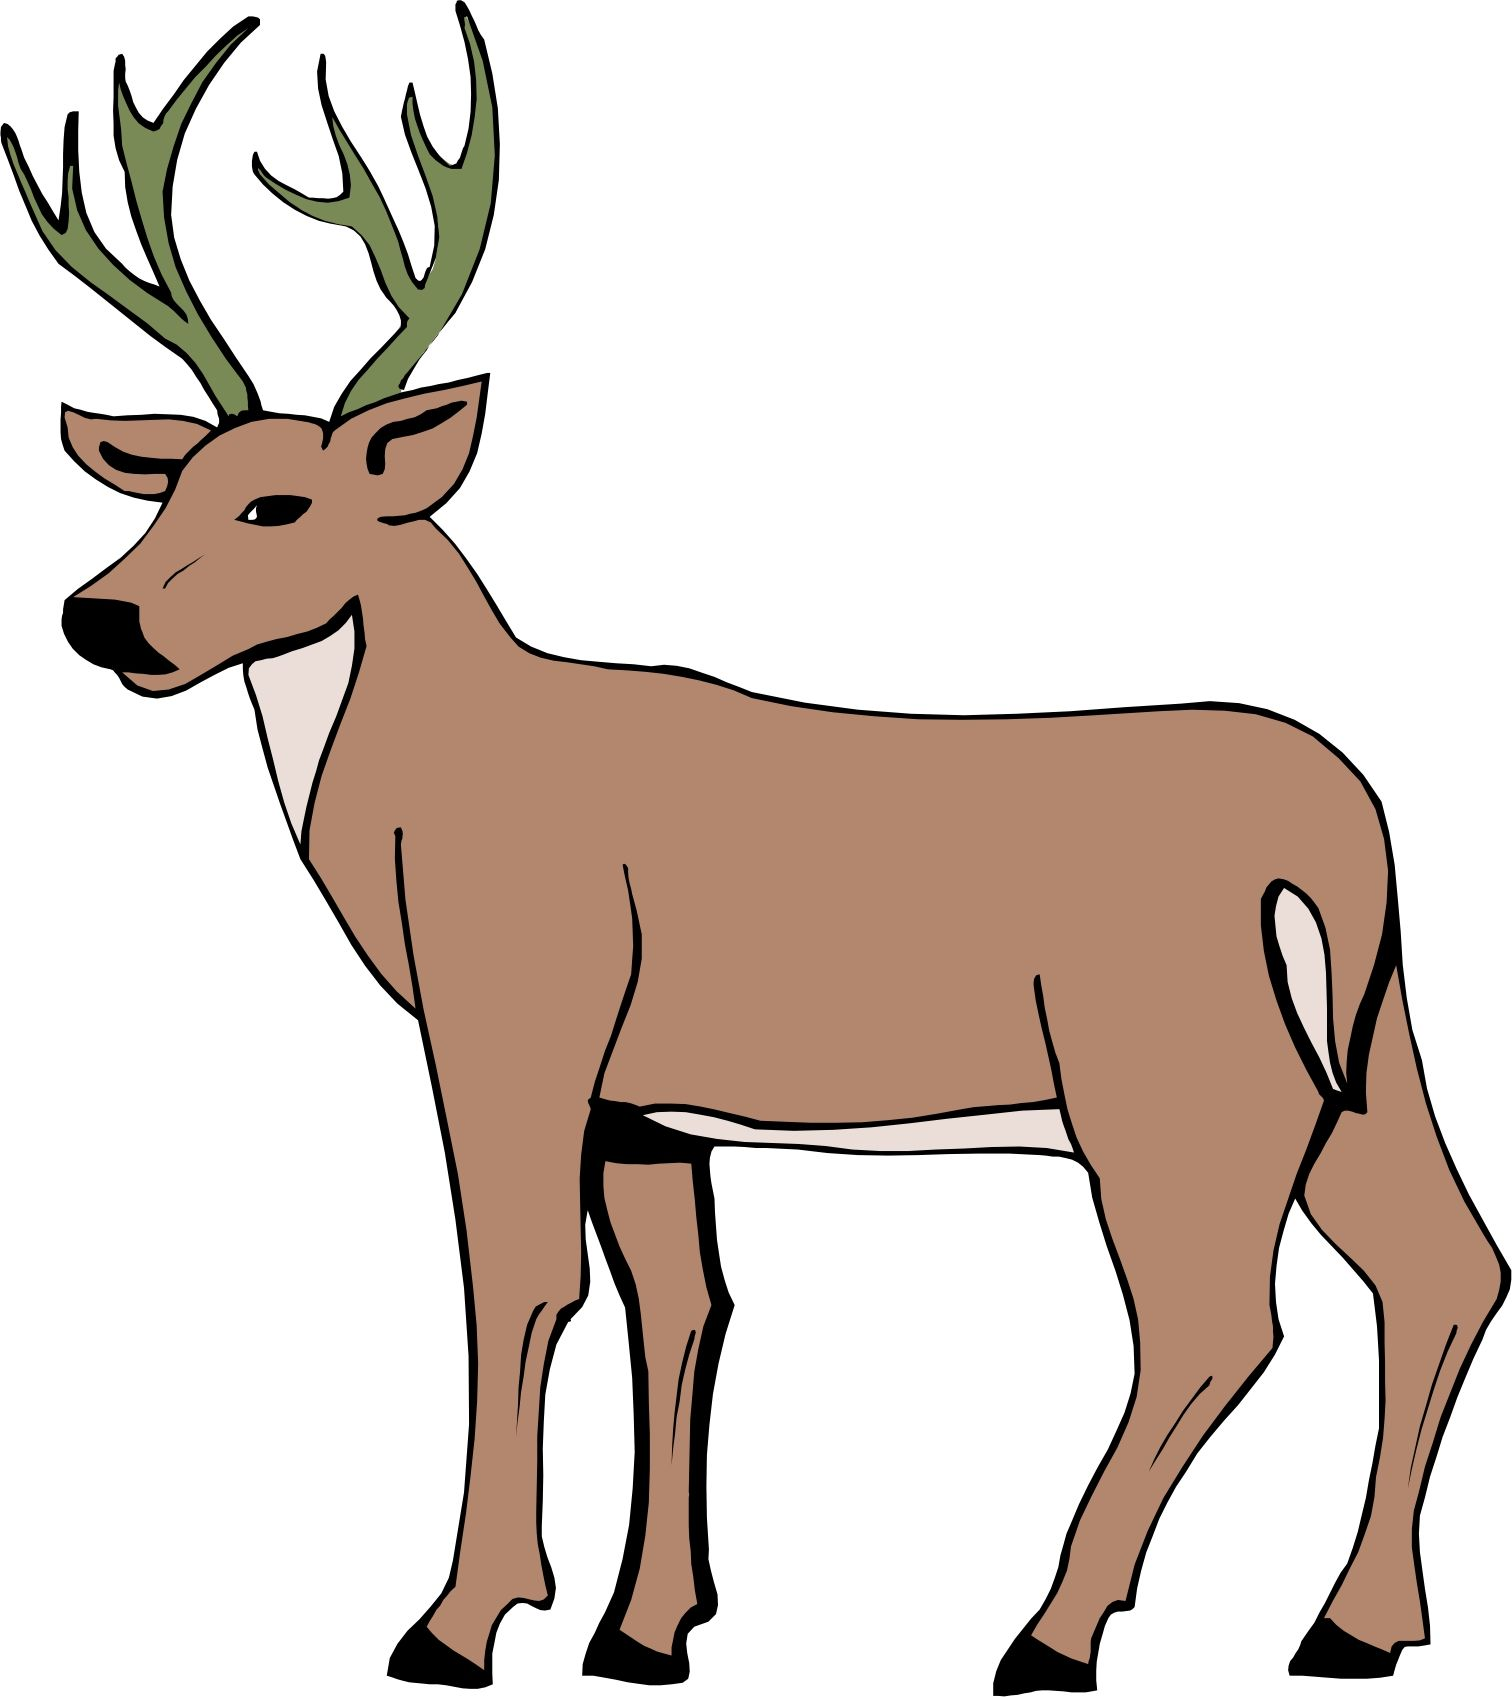 cartoon deer cartoon deer page 2 cartoon drawing